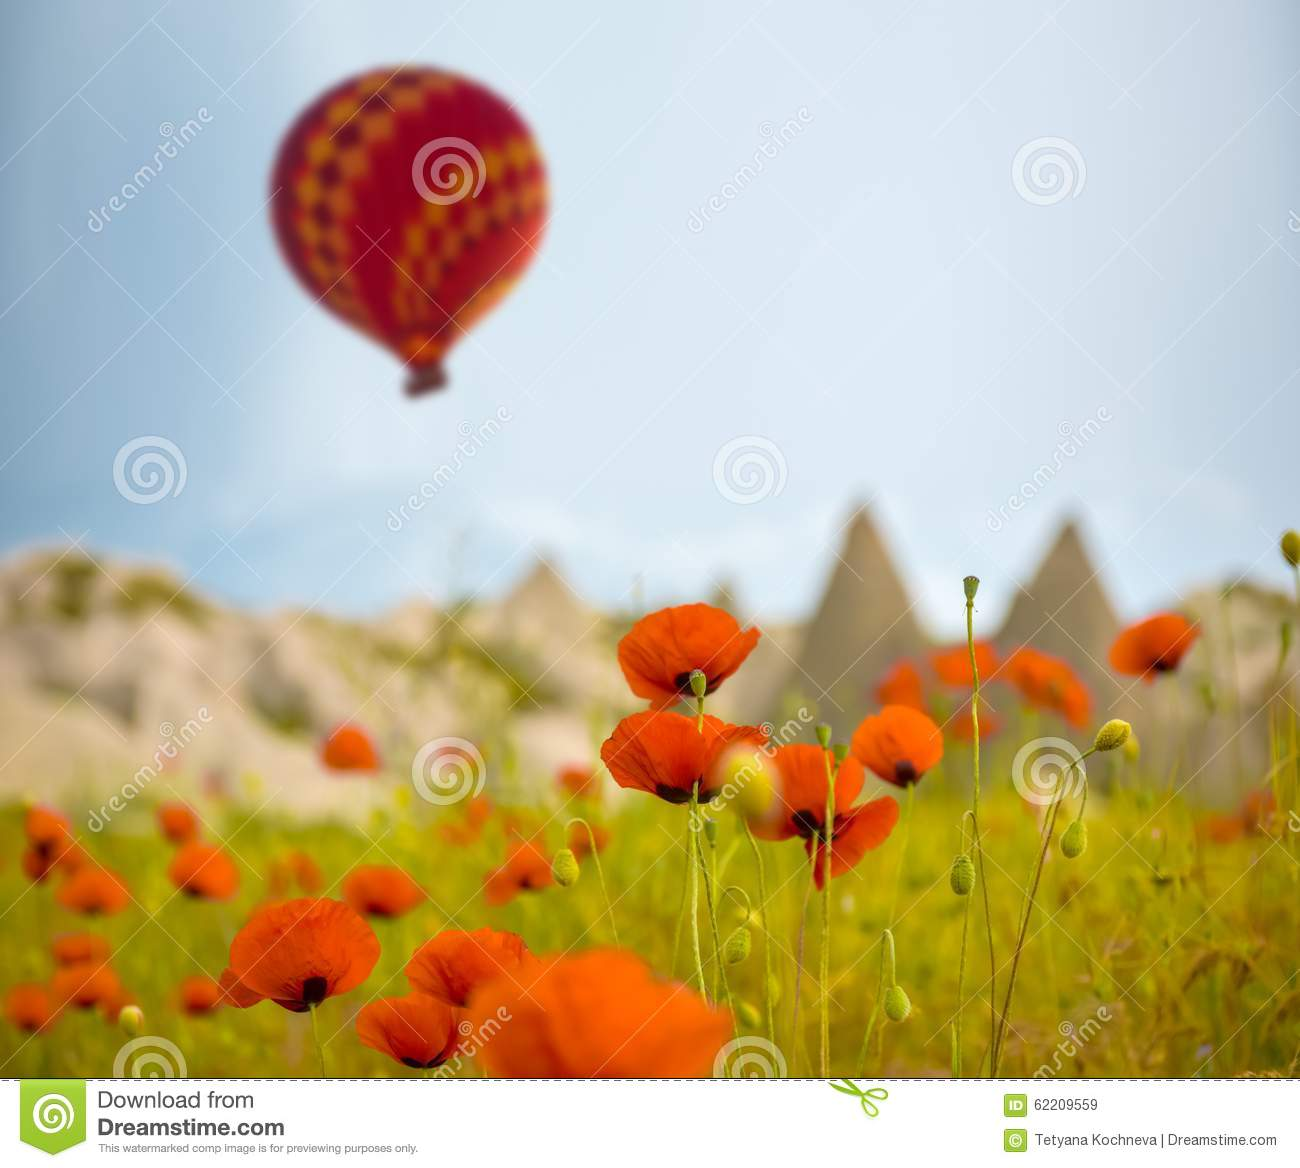 Air balloon over poppies field Cappadocia, Turkey